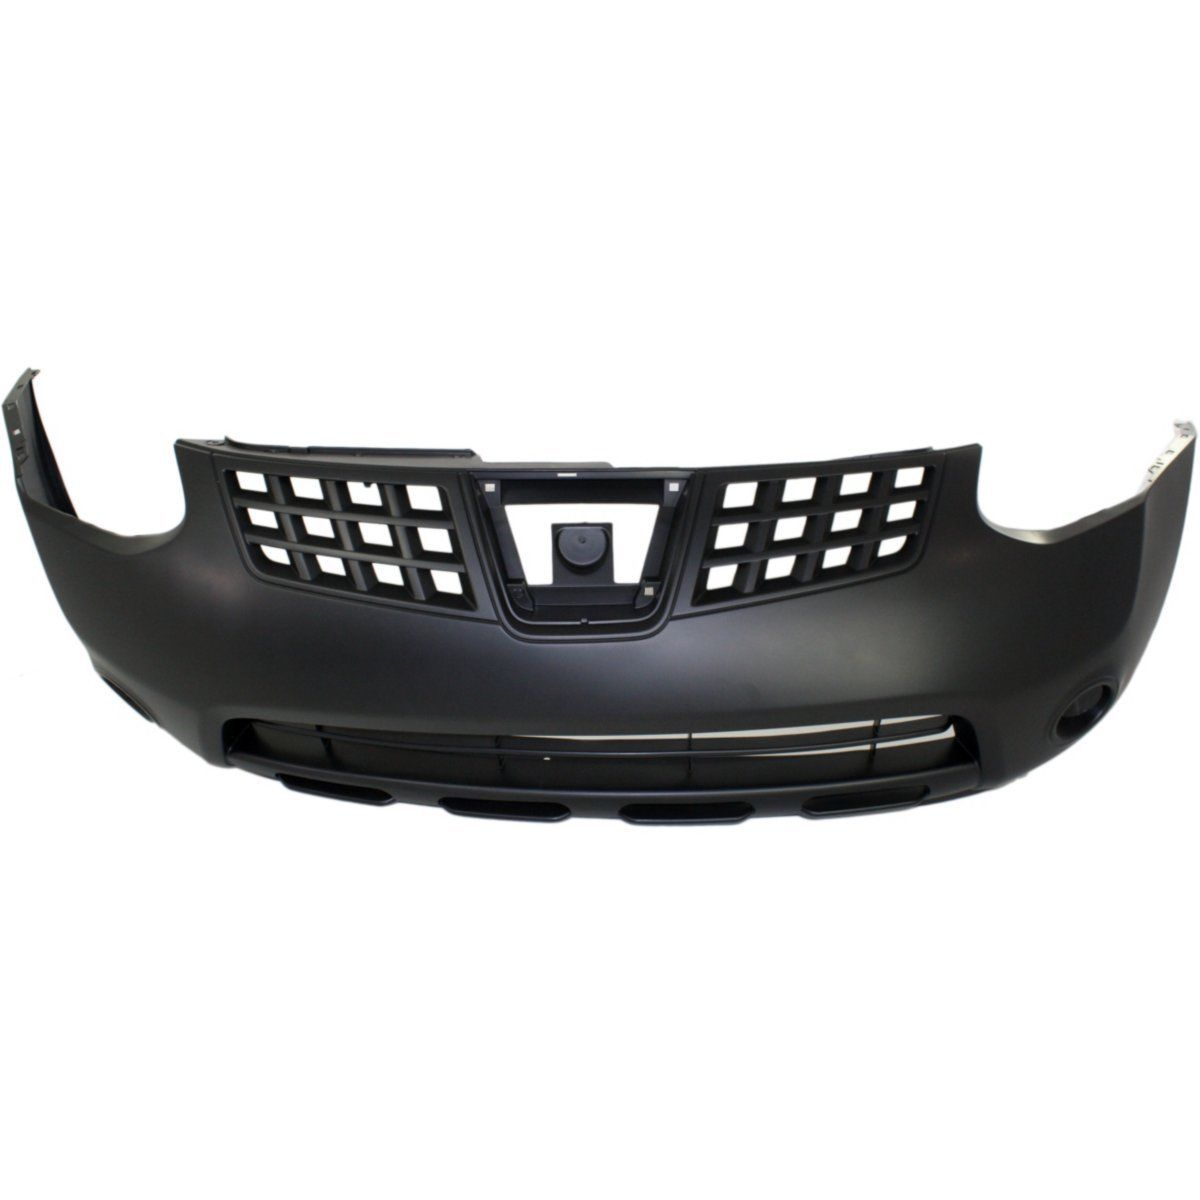 Awesome Front Bumper Cover For 2008-2010 Nissan Rogue w/ fog lamp holes  Primed 2019